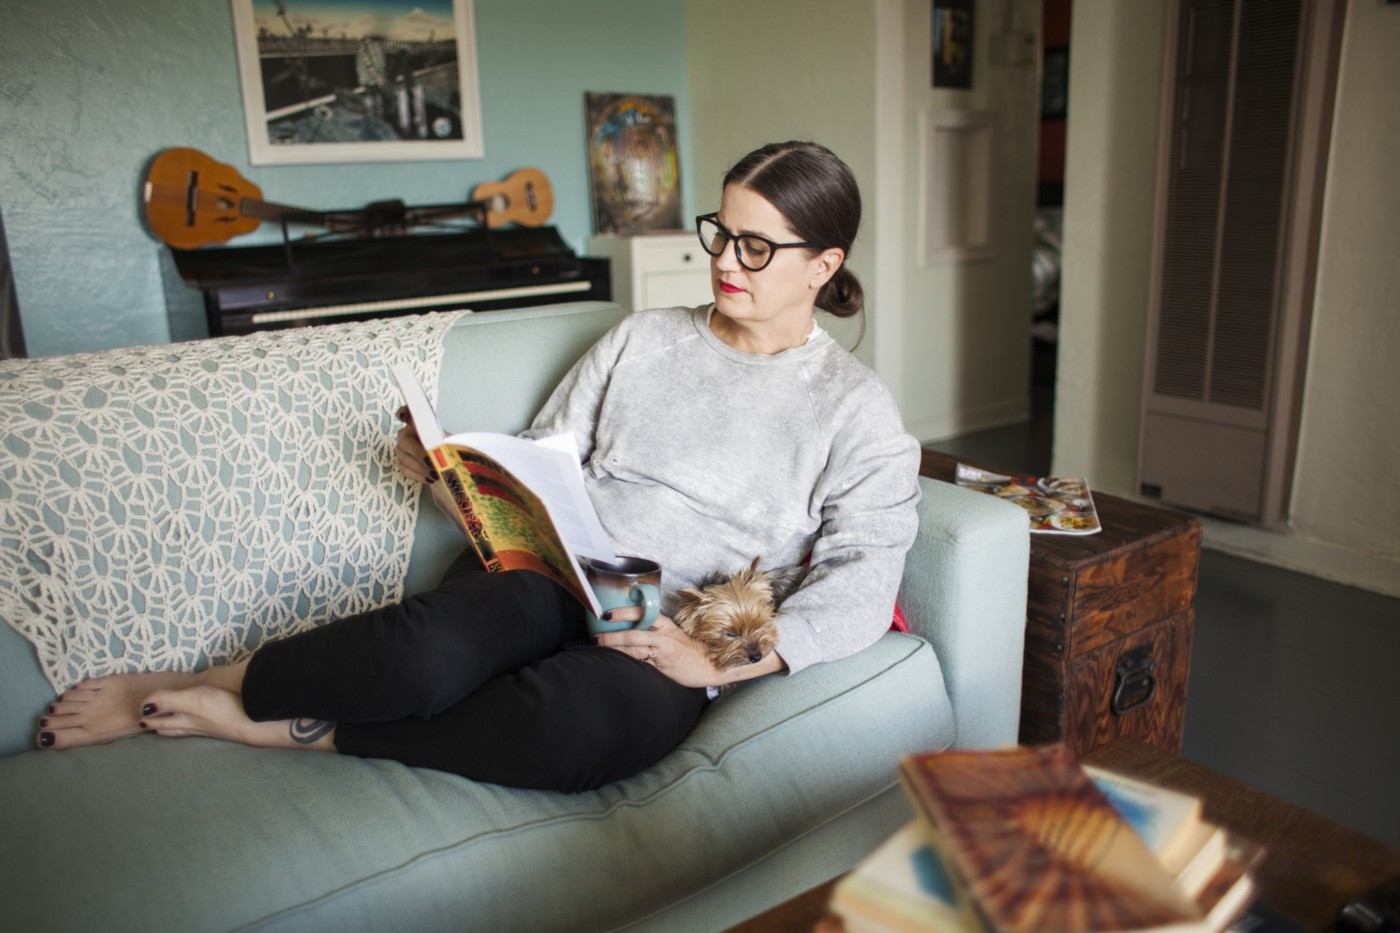 A woman curled up on a blue sofa in her creative home reading a book with her small dog in her lap.